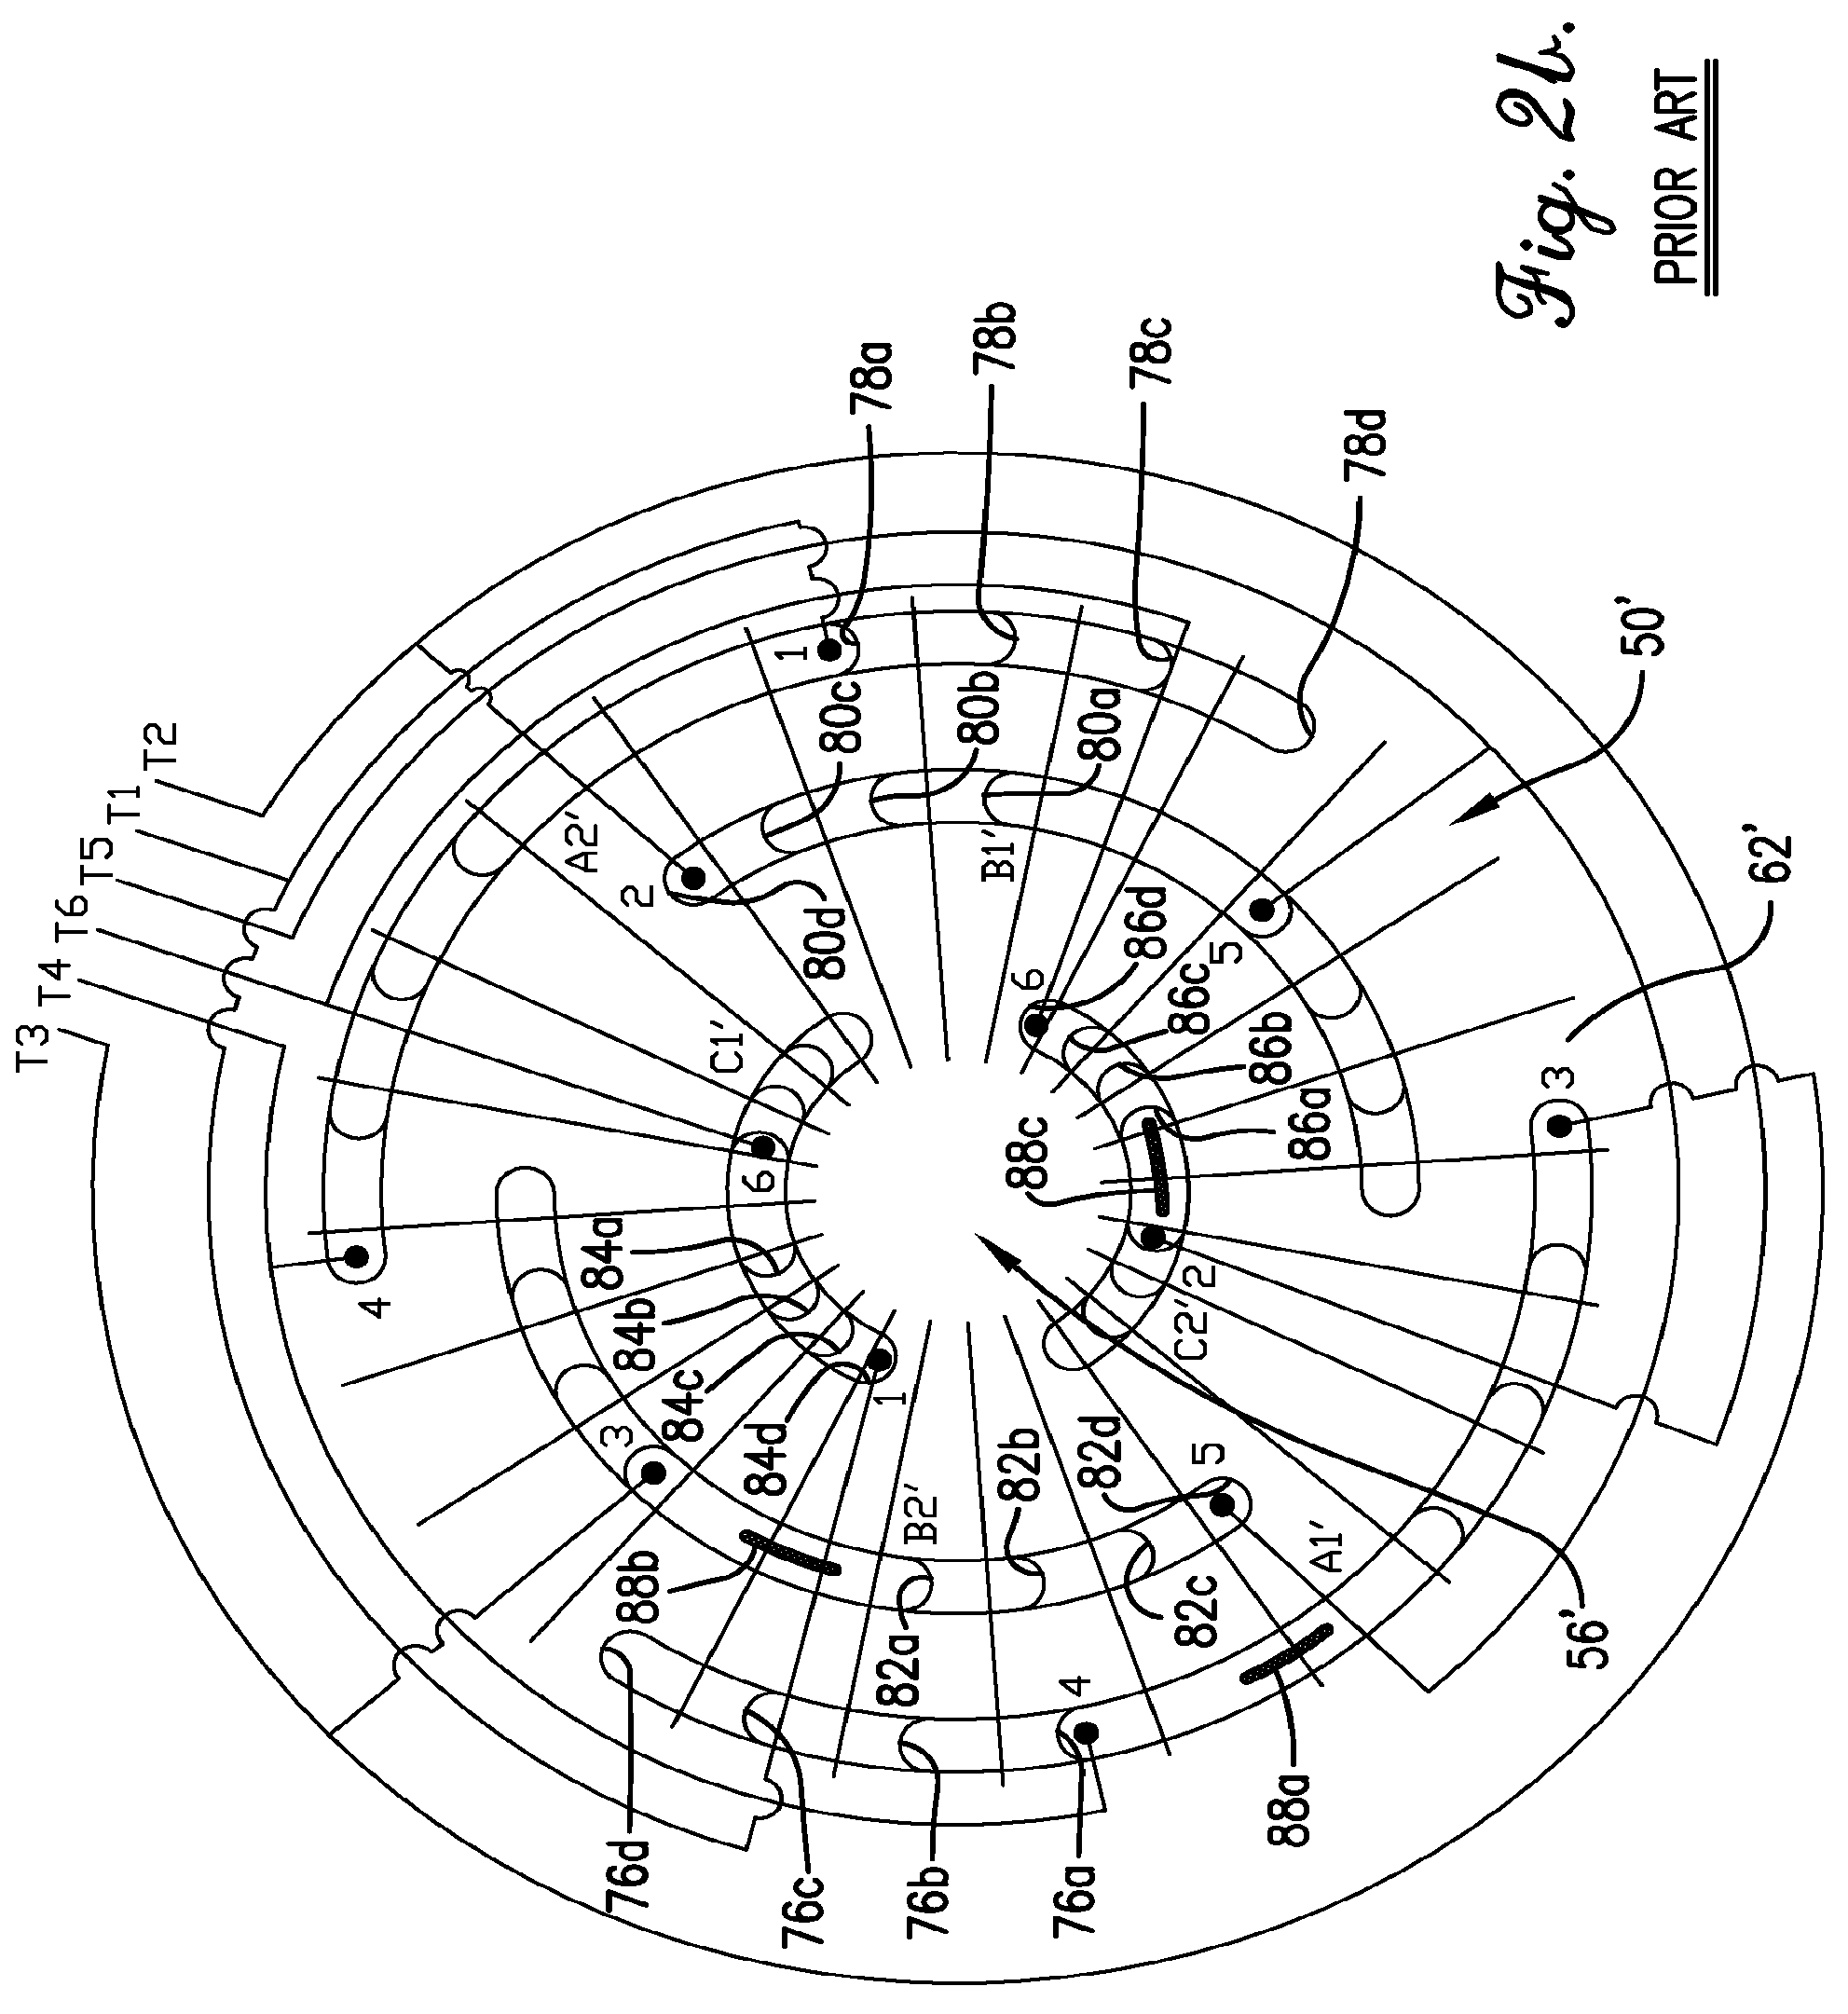 US08564167 20131022 D00003 patent us8564167 3t y winding connection for three phase 3 phase motor winding diagrams at nearapp.co